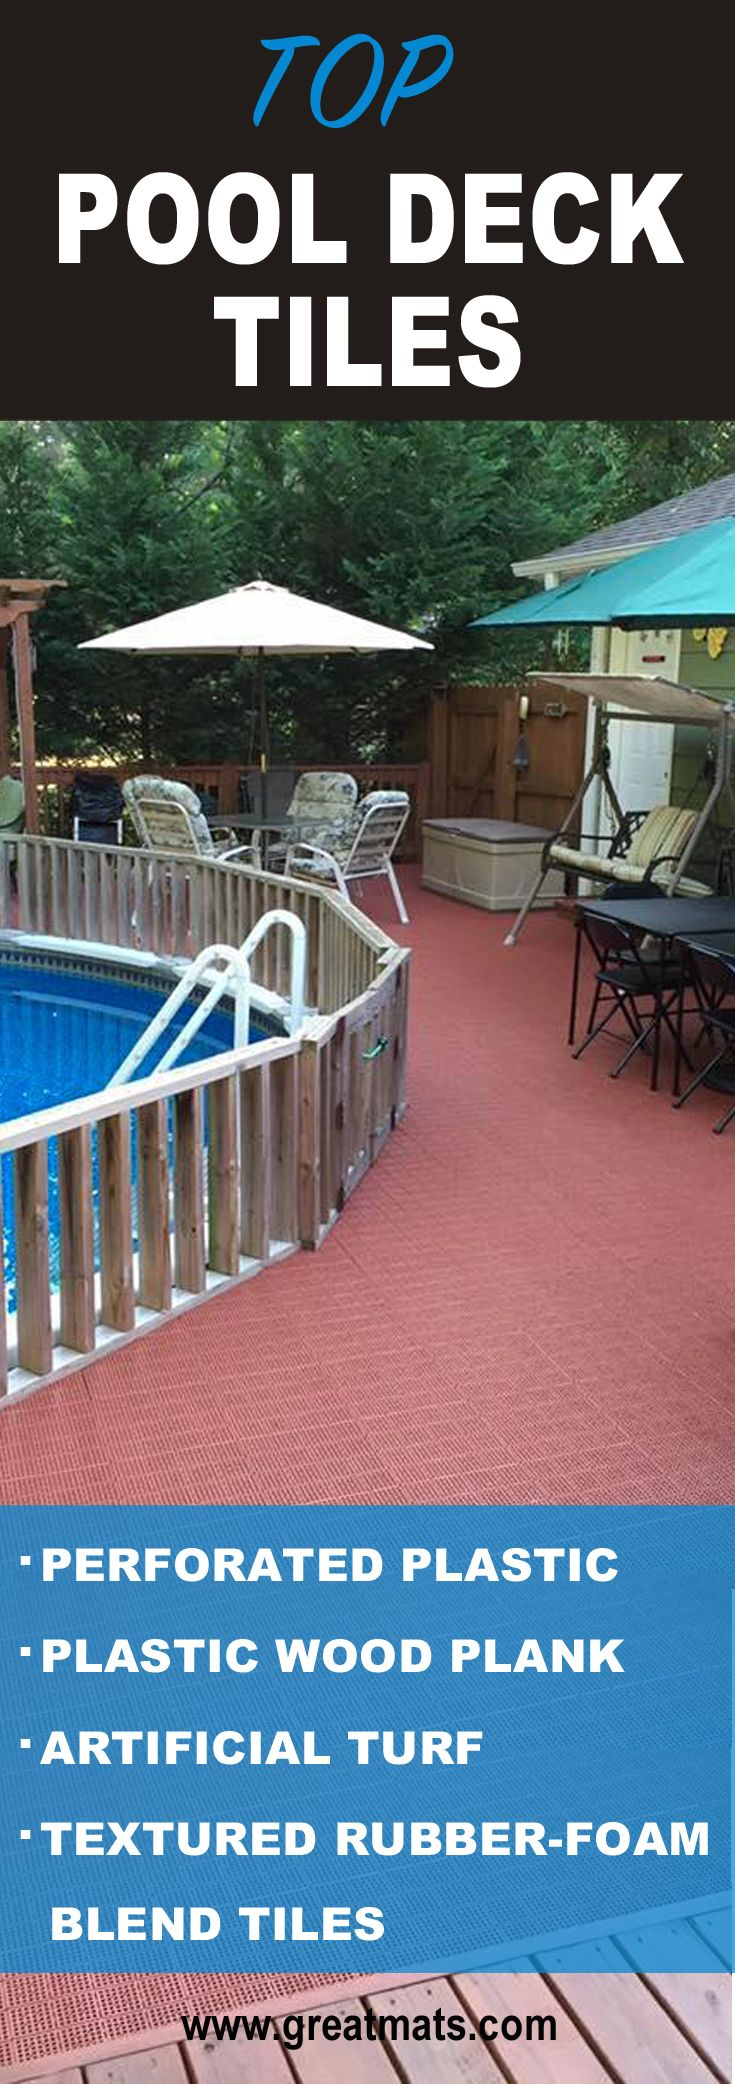 10 Best Images About Pool Deck Tiles And Mats On Pinterest